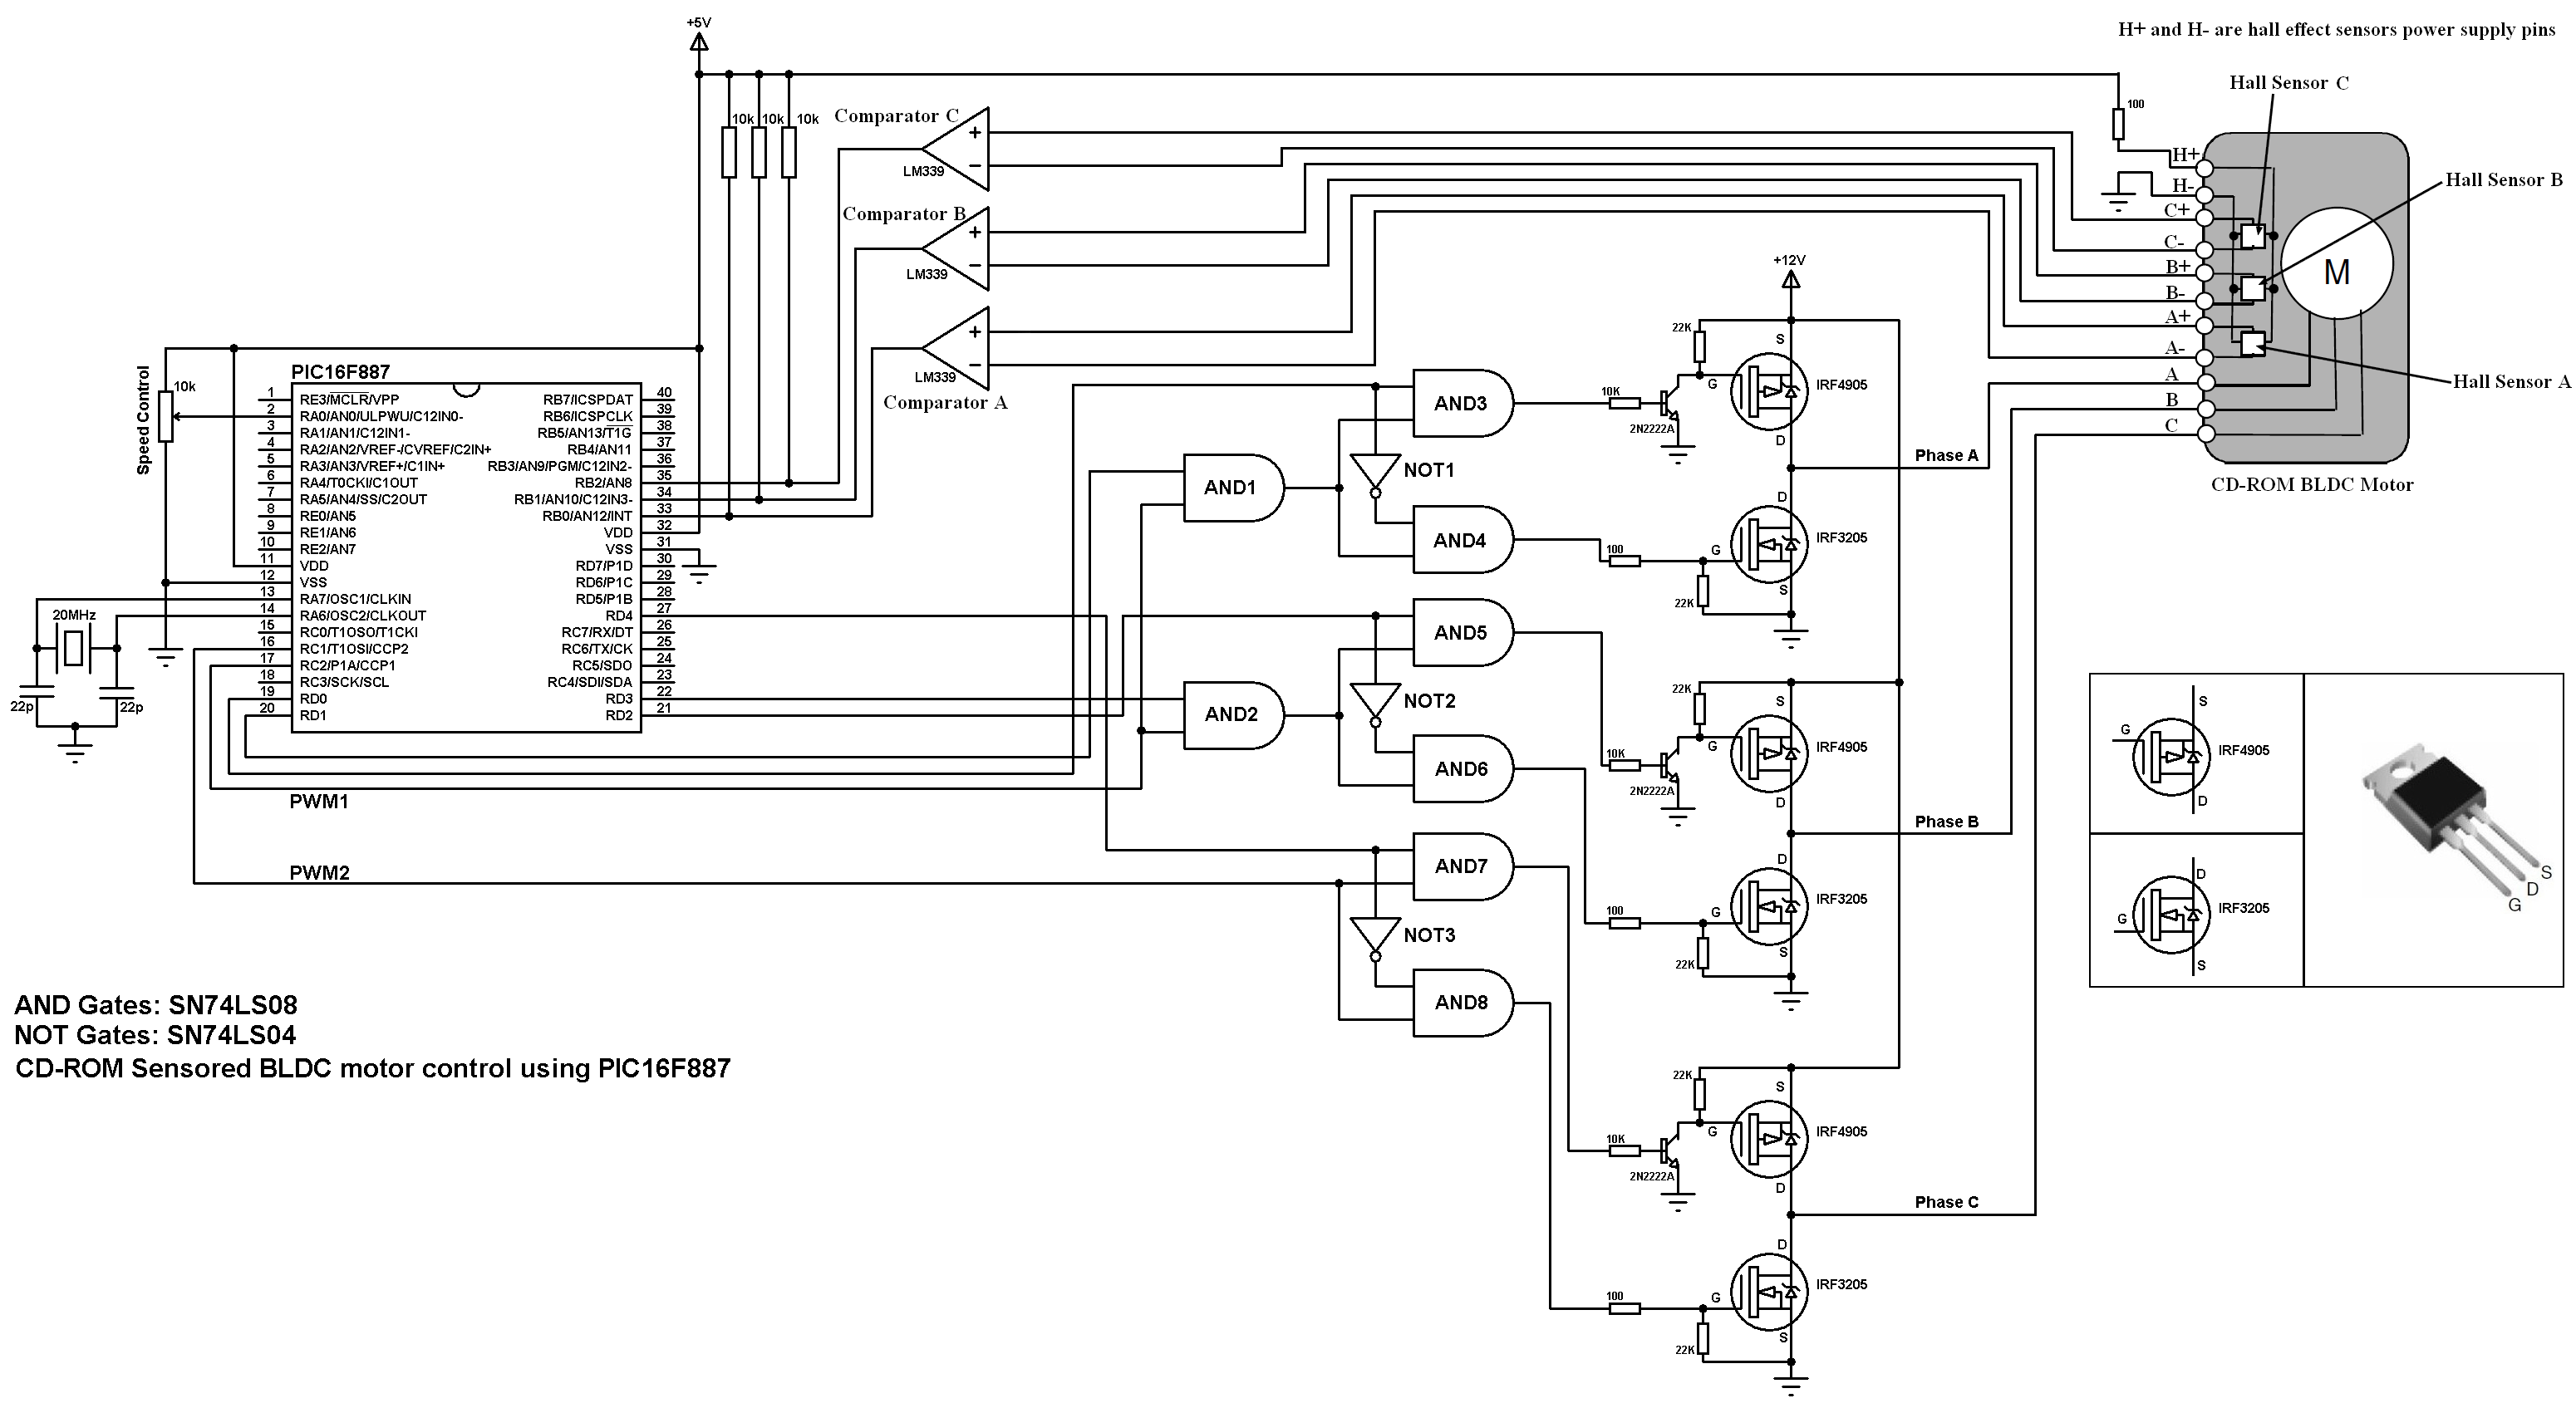 Bldc Motor Control Using Pic16f877a Code Circuit Arduino Cd Rom Brushless Dc Drive With Pic16f887 Ccs C Block Diagram